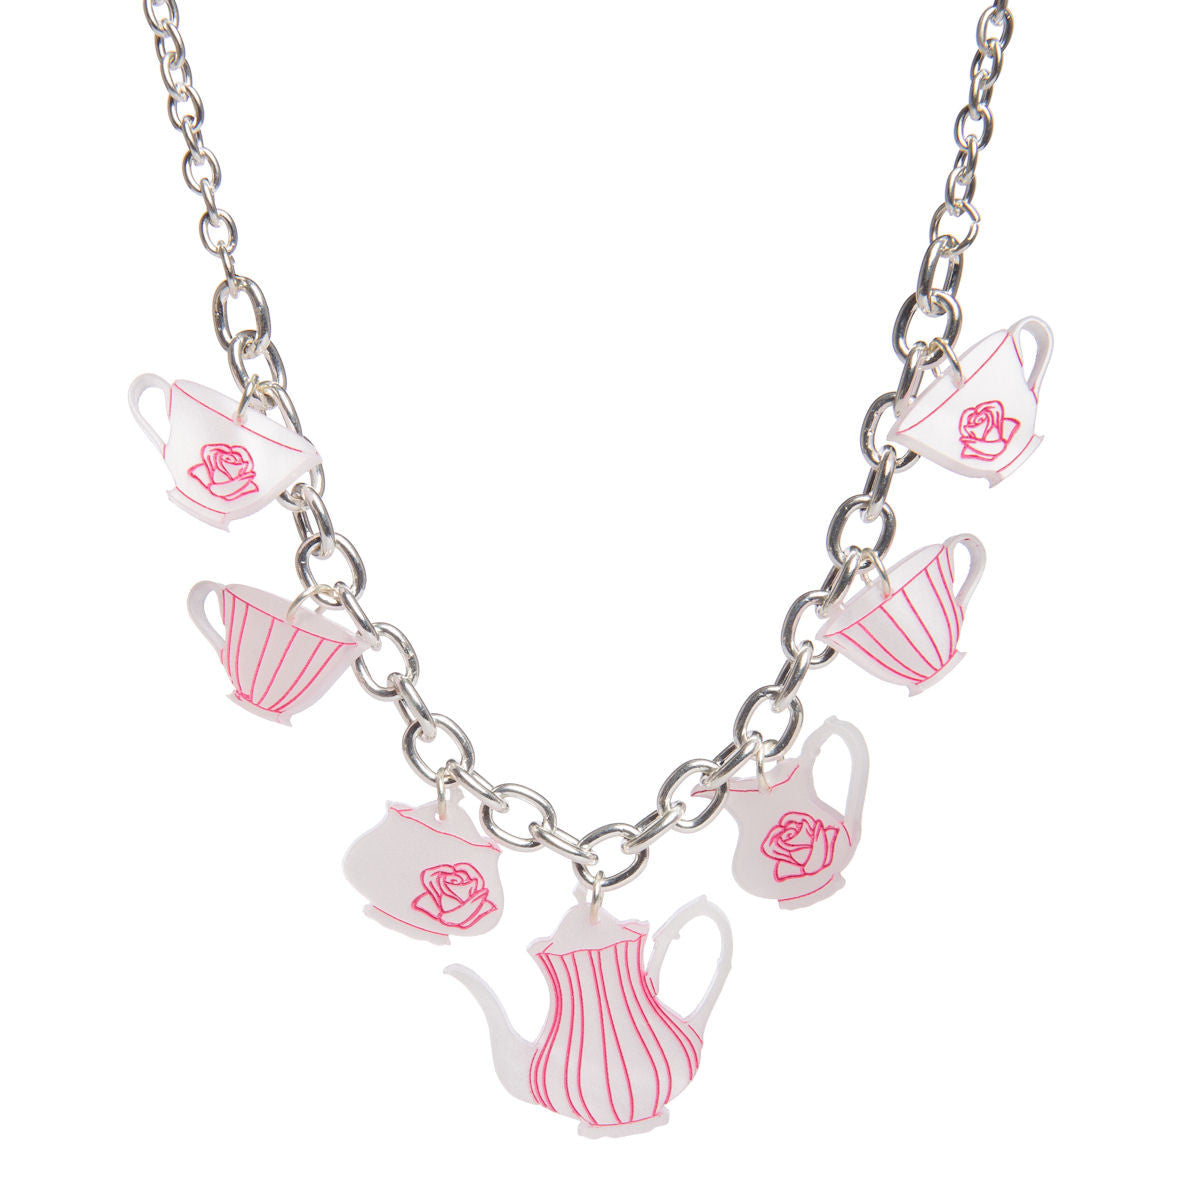 Sugar & Vice Tea Set Necklace